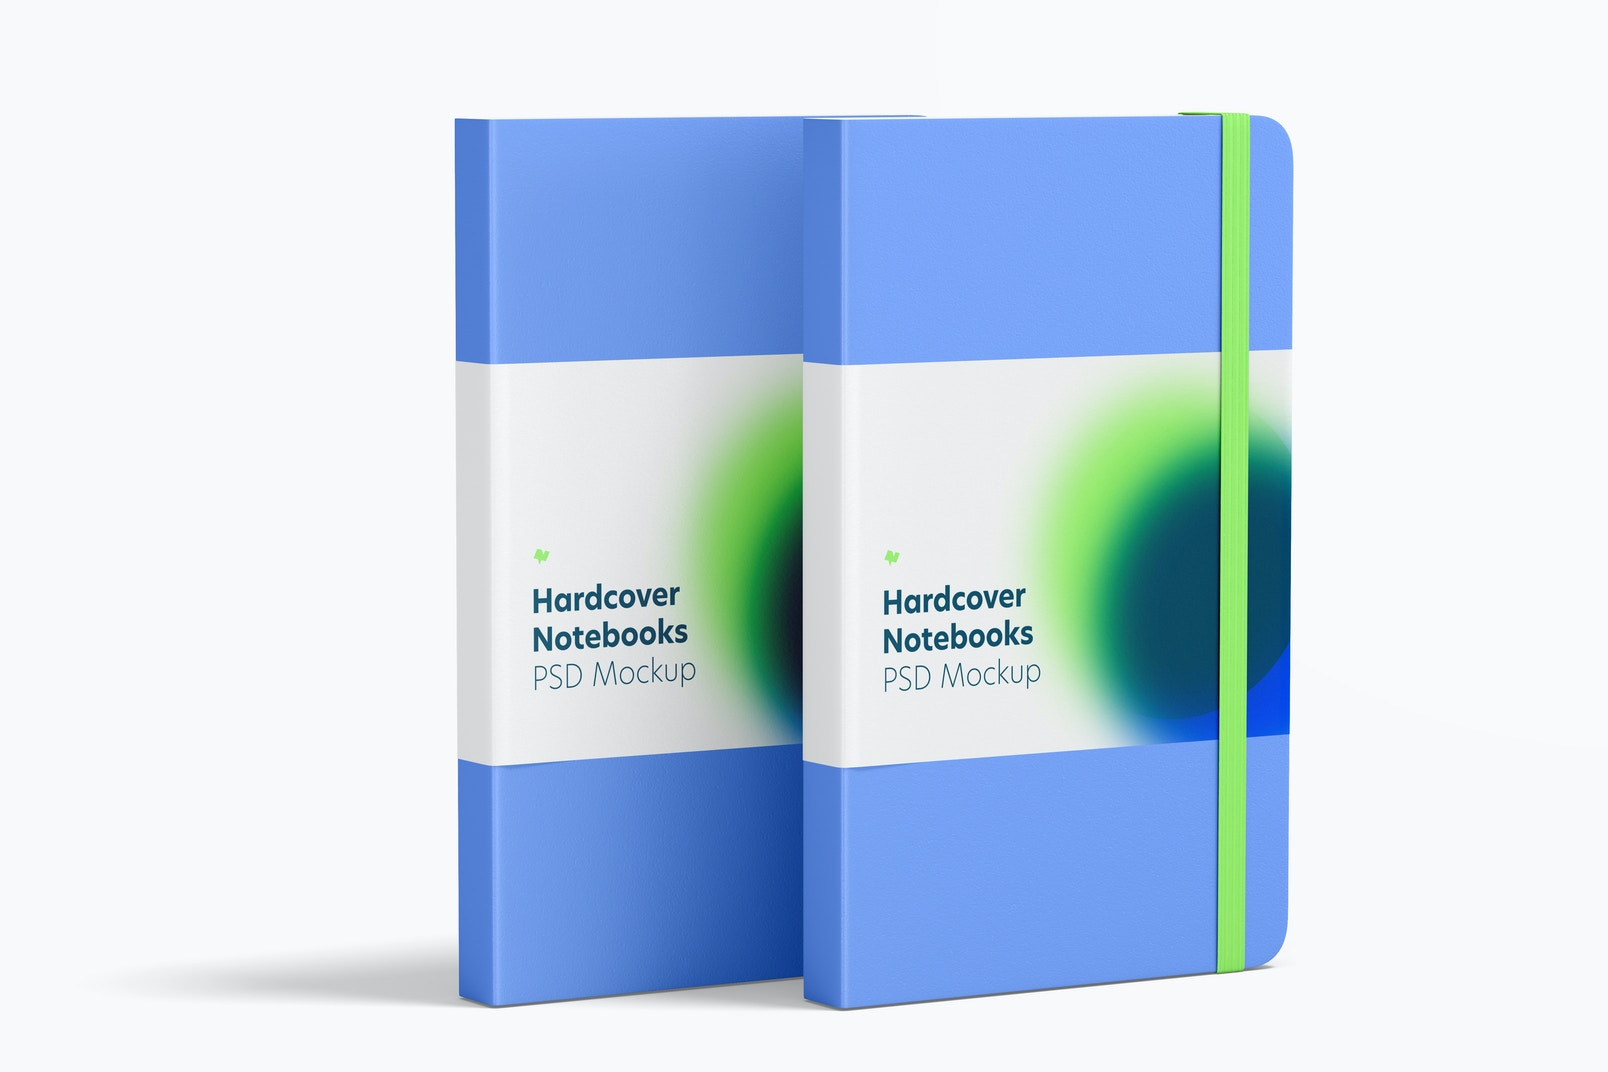 Hardcover Notebooks with Elastic Band Mockup, Left View